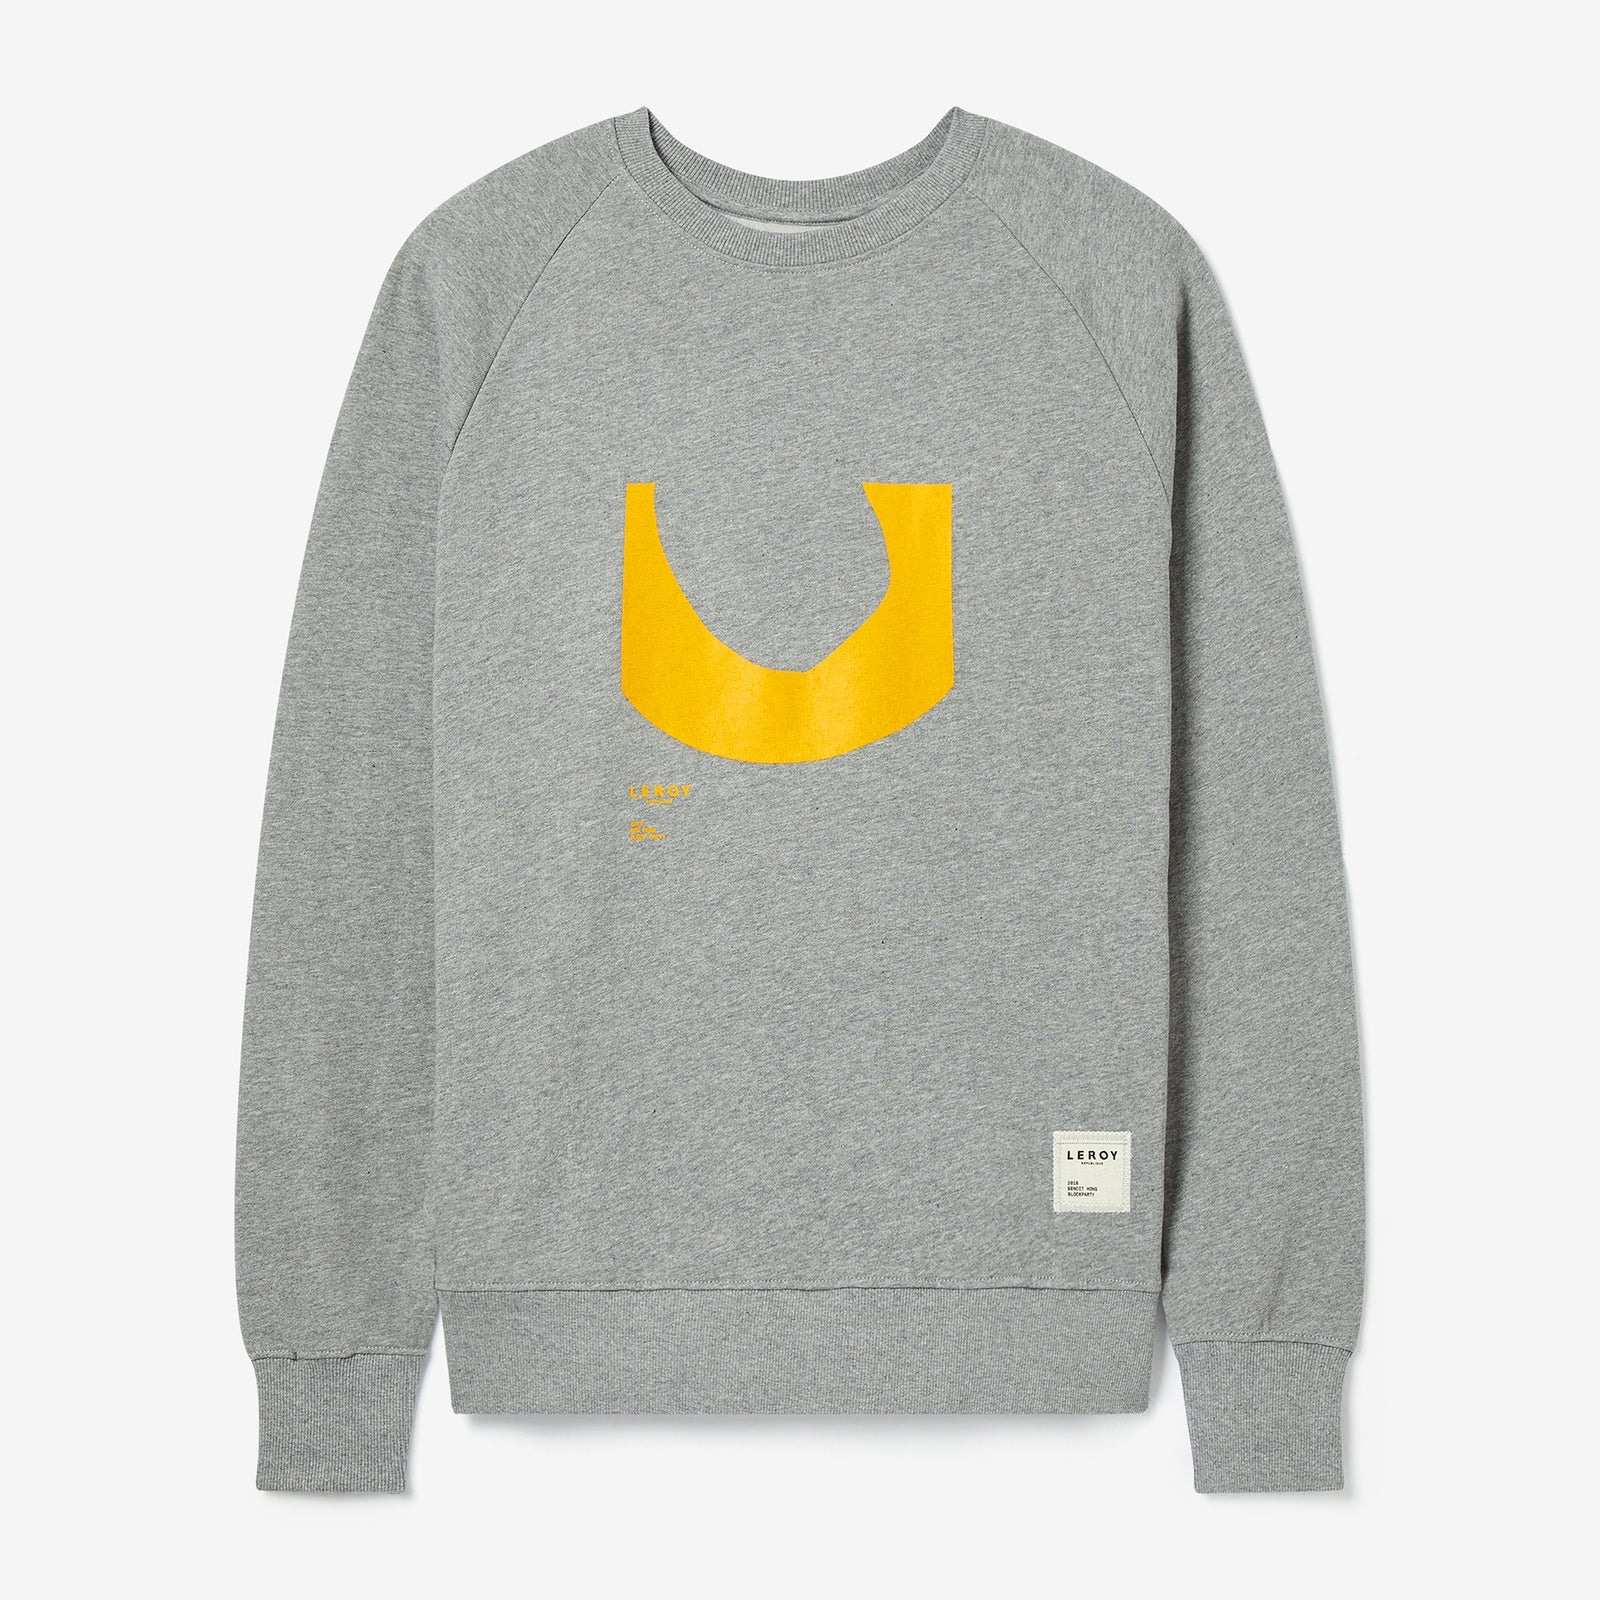 Ditch warm yellow crew neck